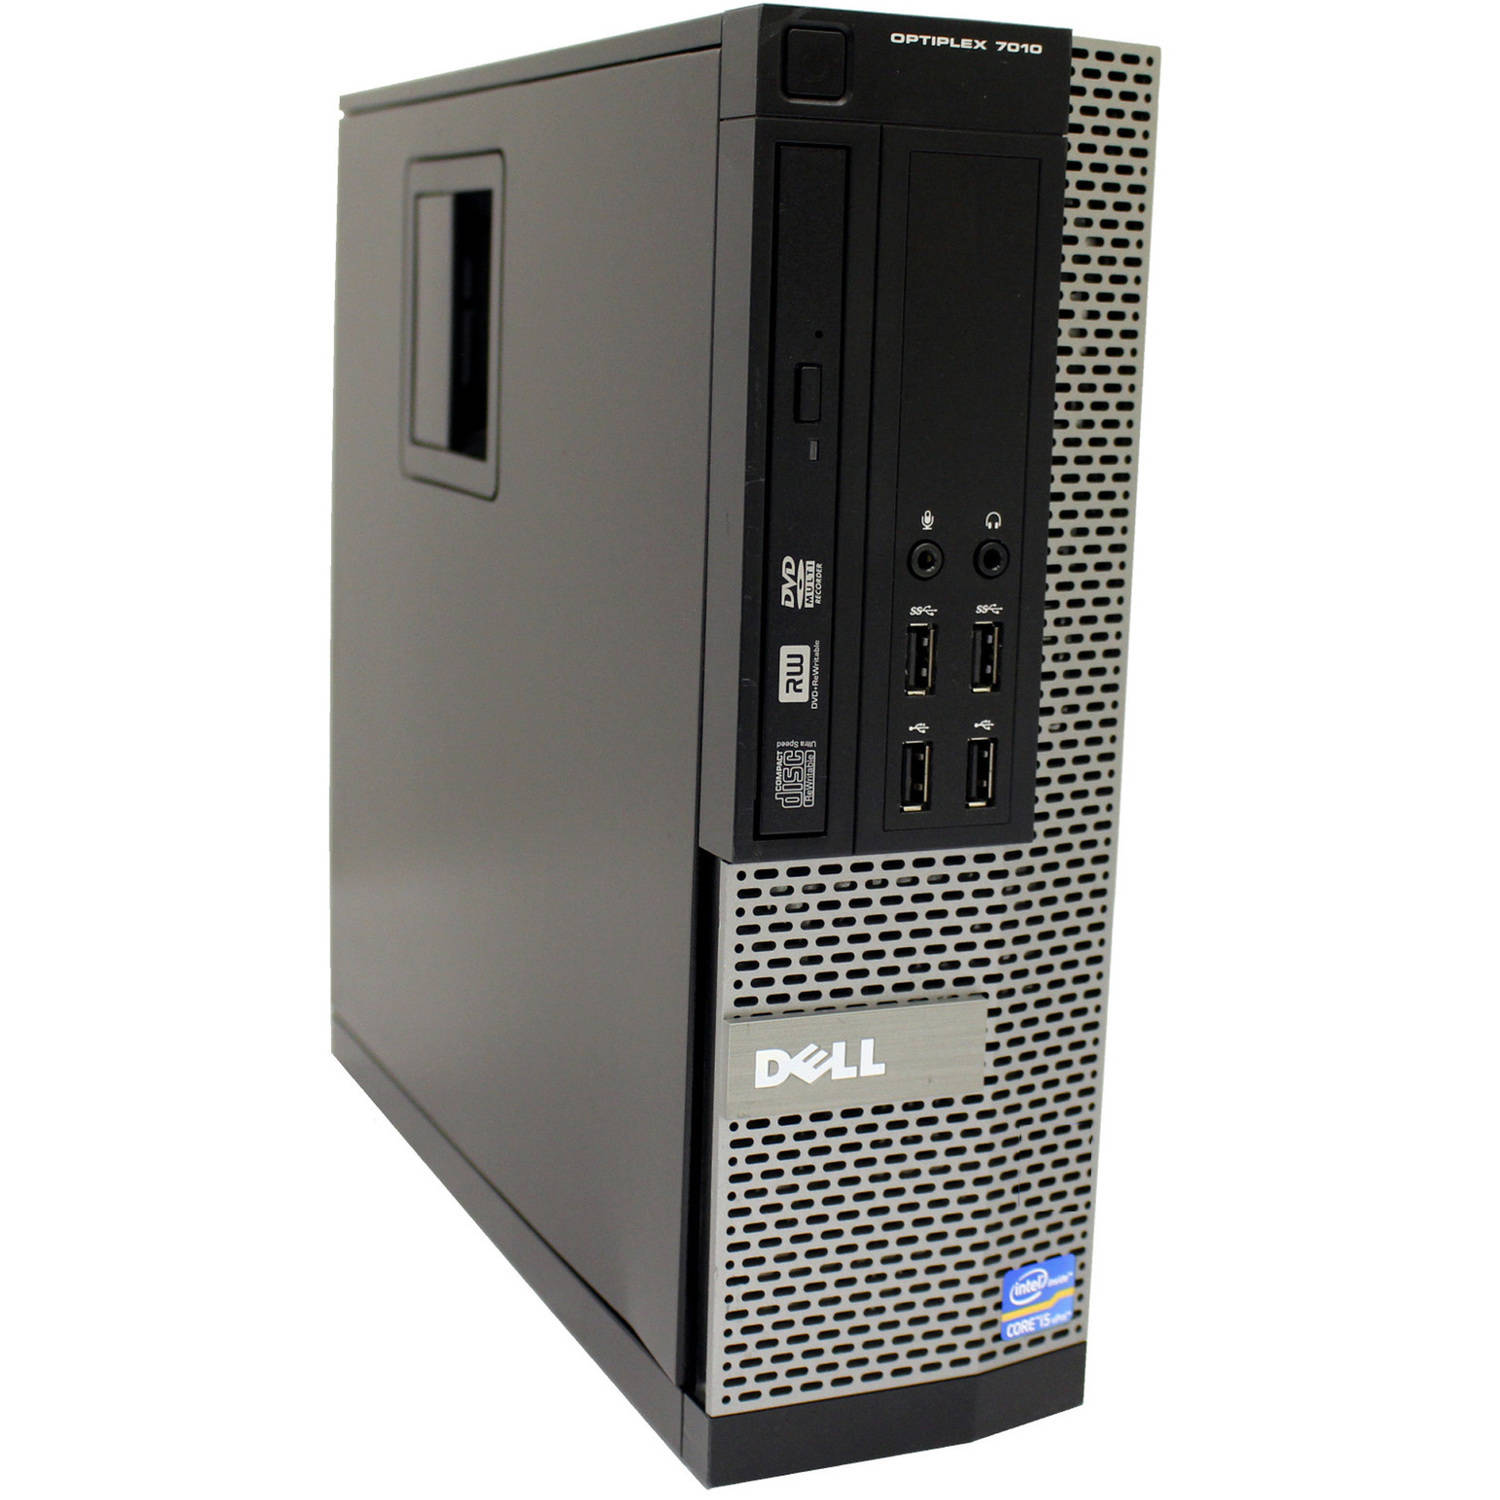 Certified Certified Refurbished Dell 7010 SFF Desktop PC with Intel Core i5-3470 Processor, 4GB Memory, 1TB SATA Hard Drive and Windows 10 Home (Monitor Not Included)